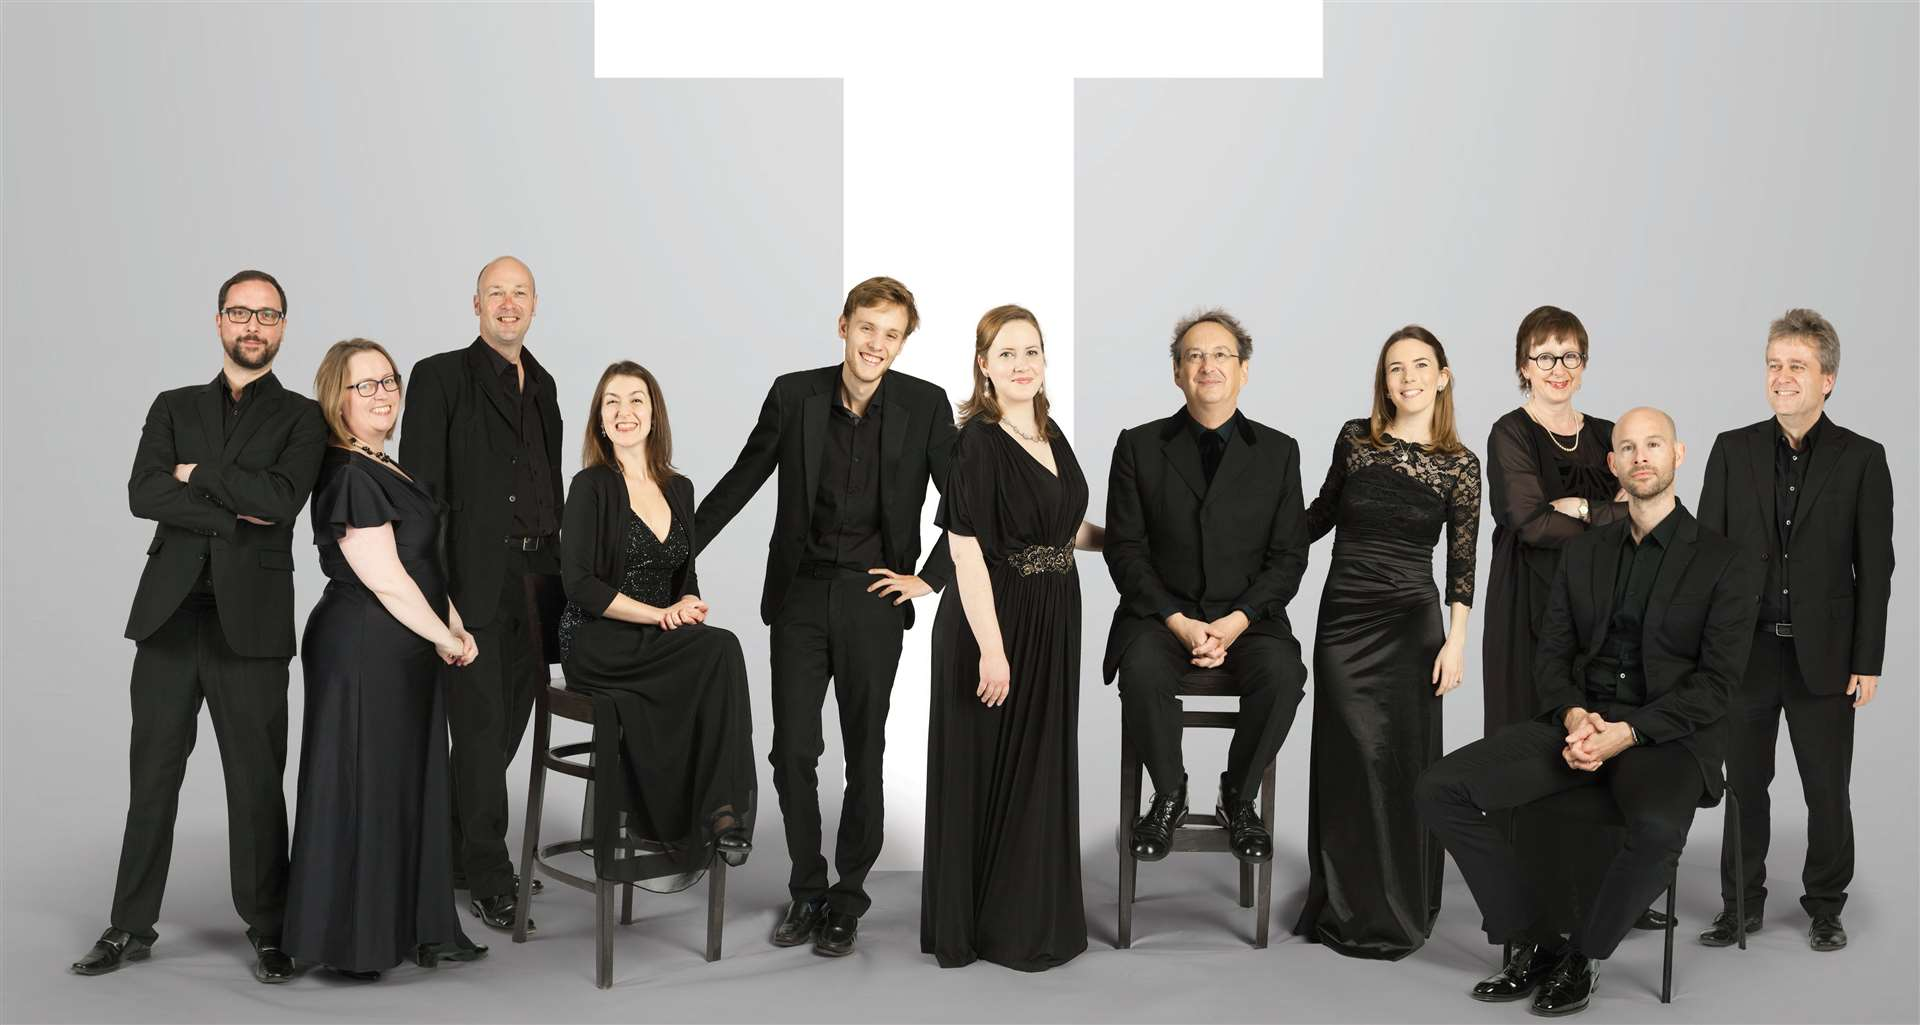 The Canterbury Festival will welcome celebrated vocal ensemble the Tallis Scholars